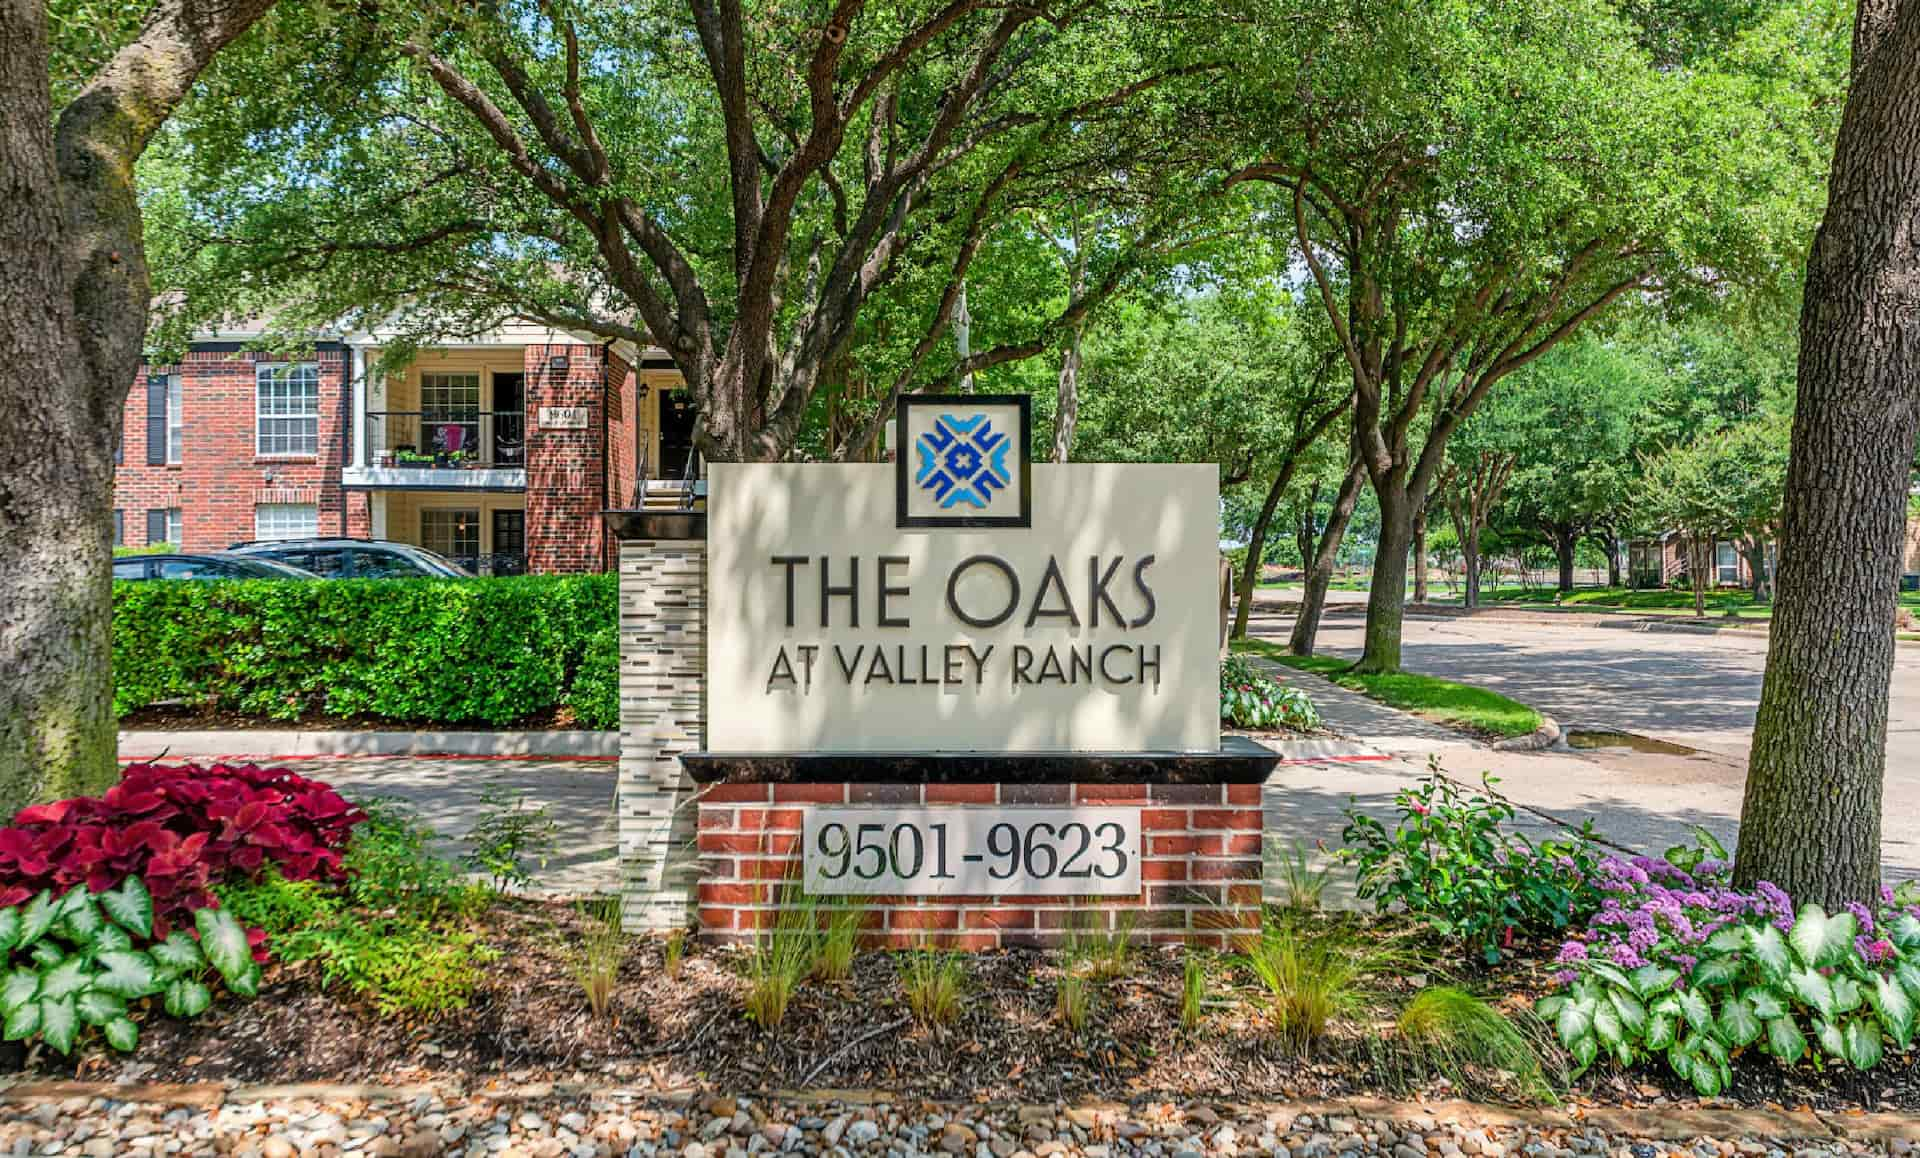 The Oaks at Valley Ranch sign.